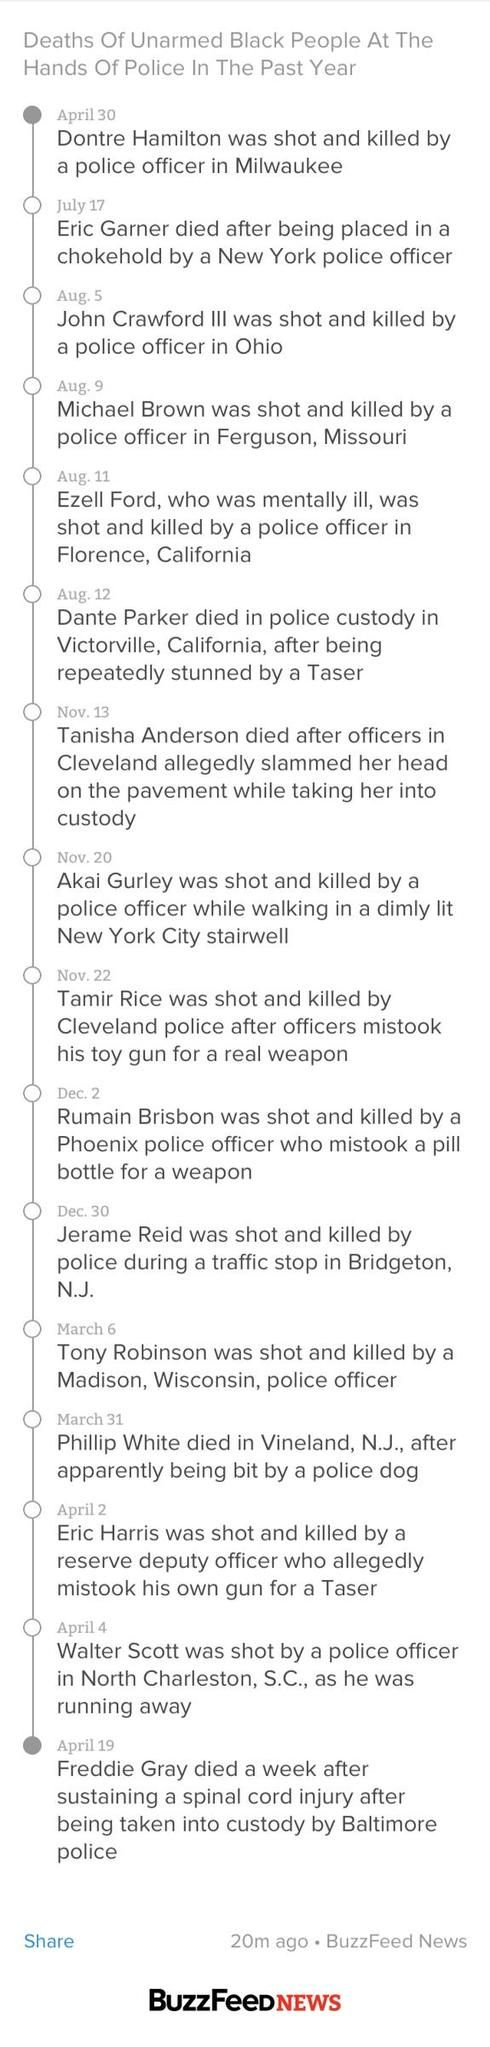 A timeline of unarmed black people killed by police in the past year